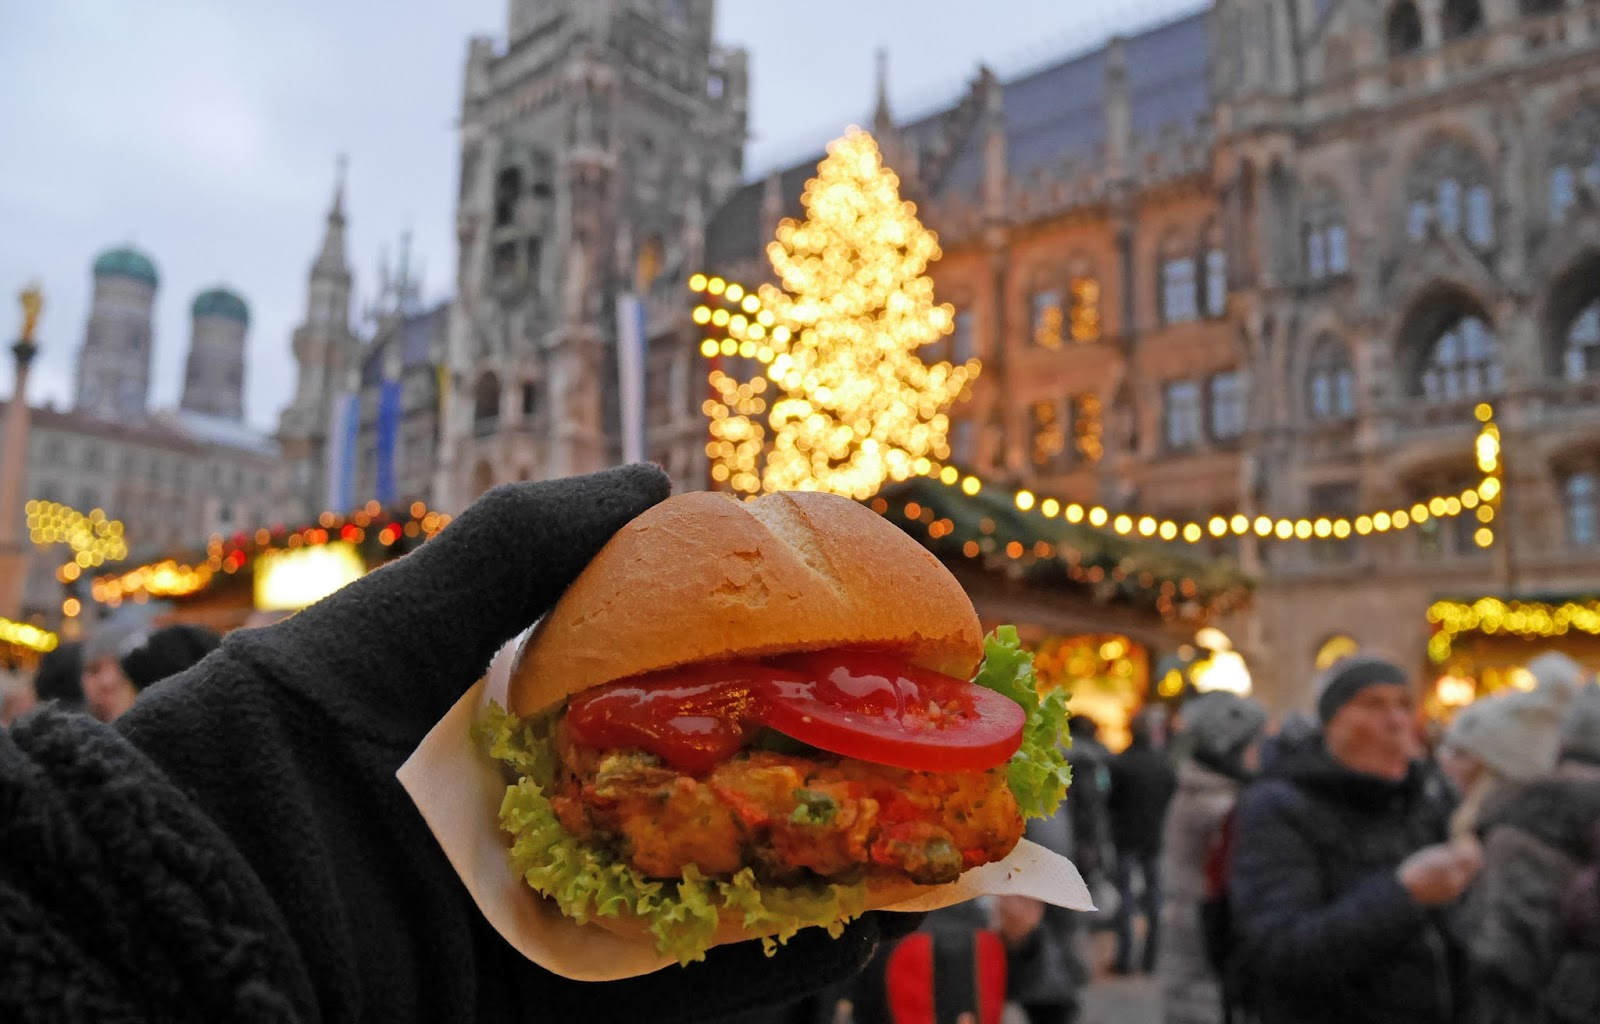 Dinner at the Munich Christmas Markets